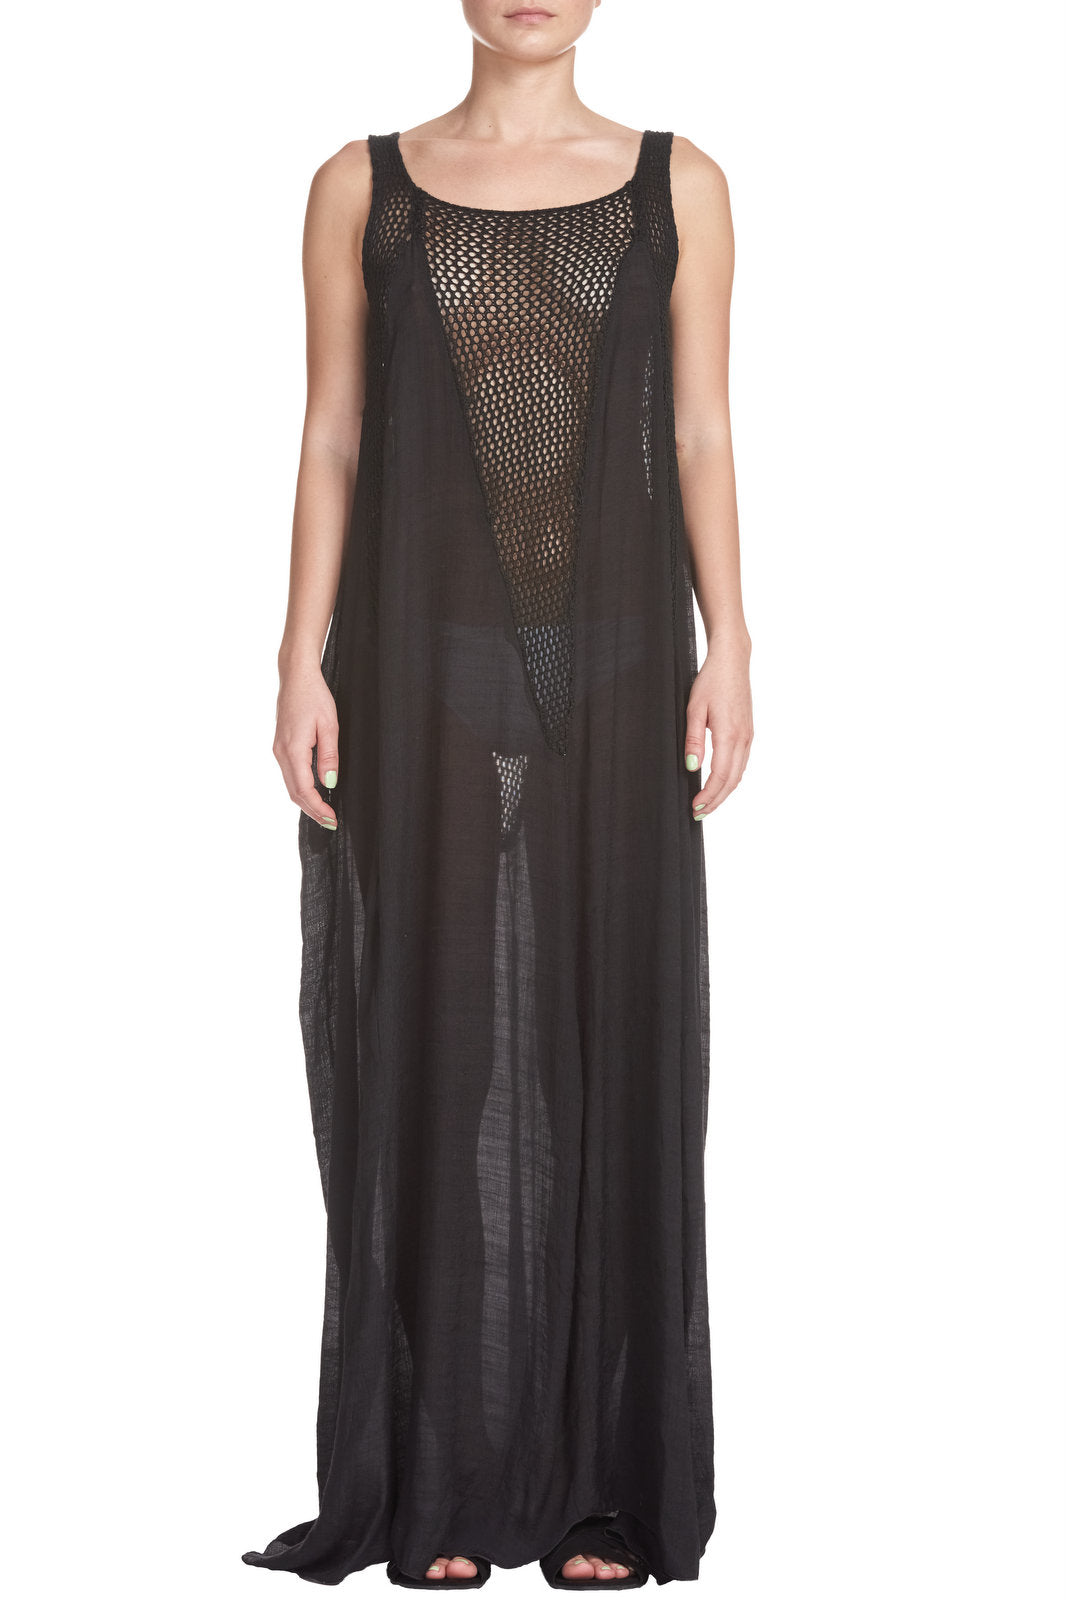 Black Sleeveless Maxi Cover Up with Crochet Inset